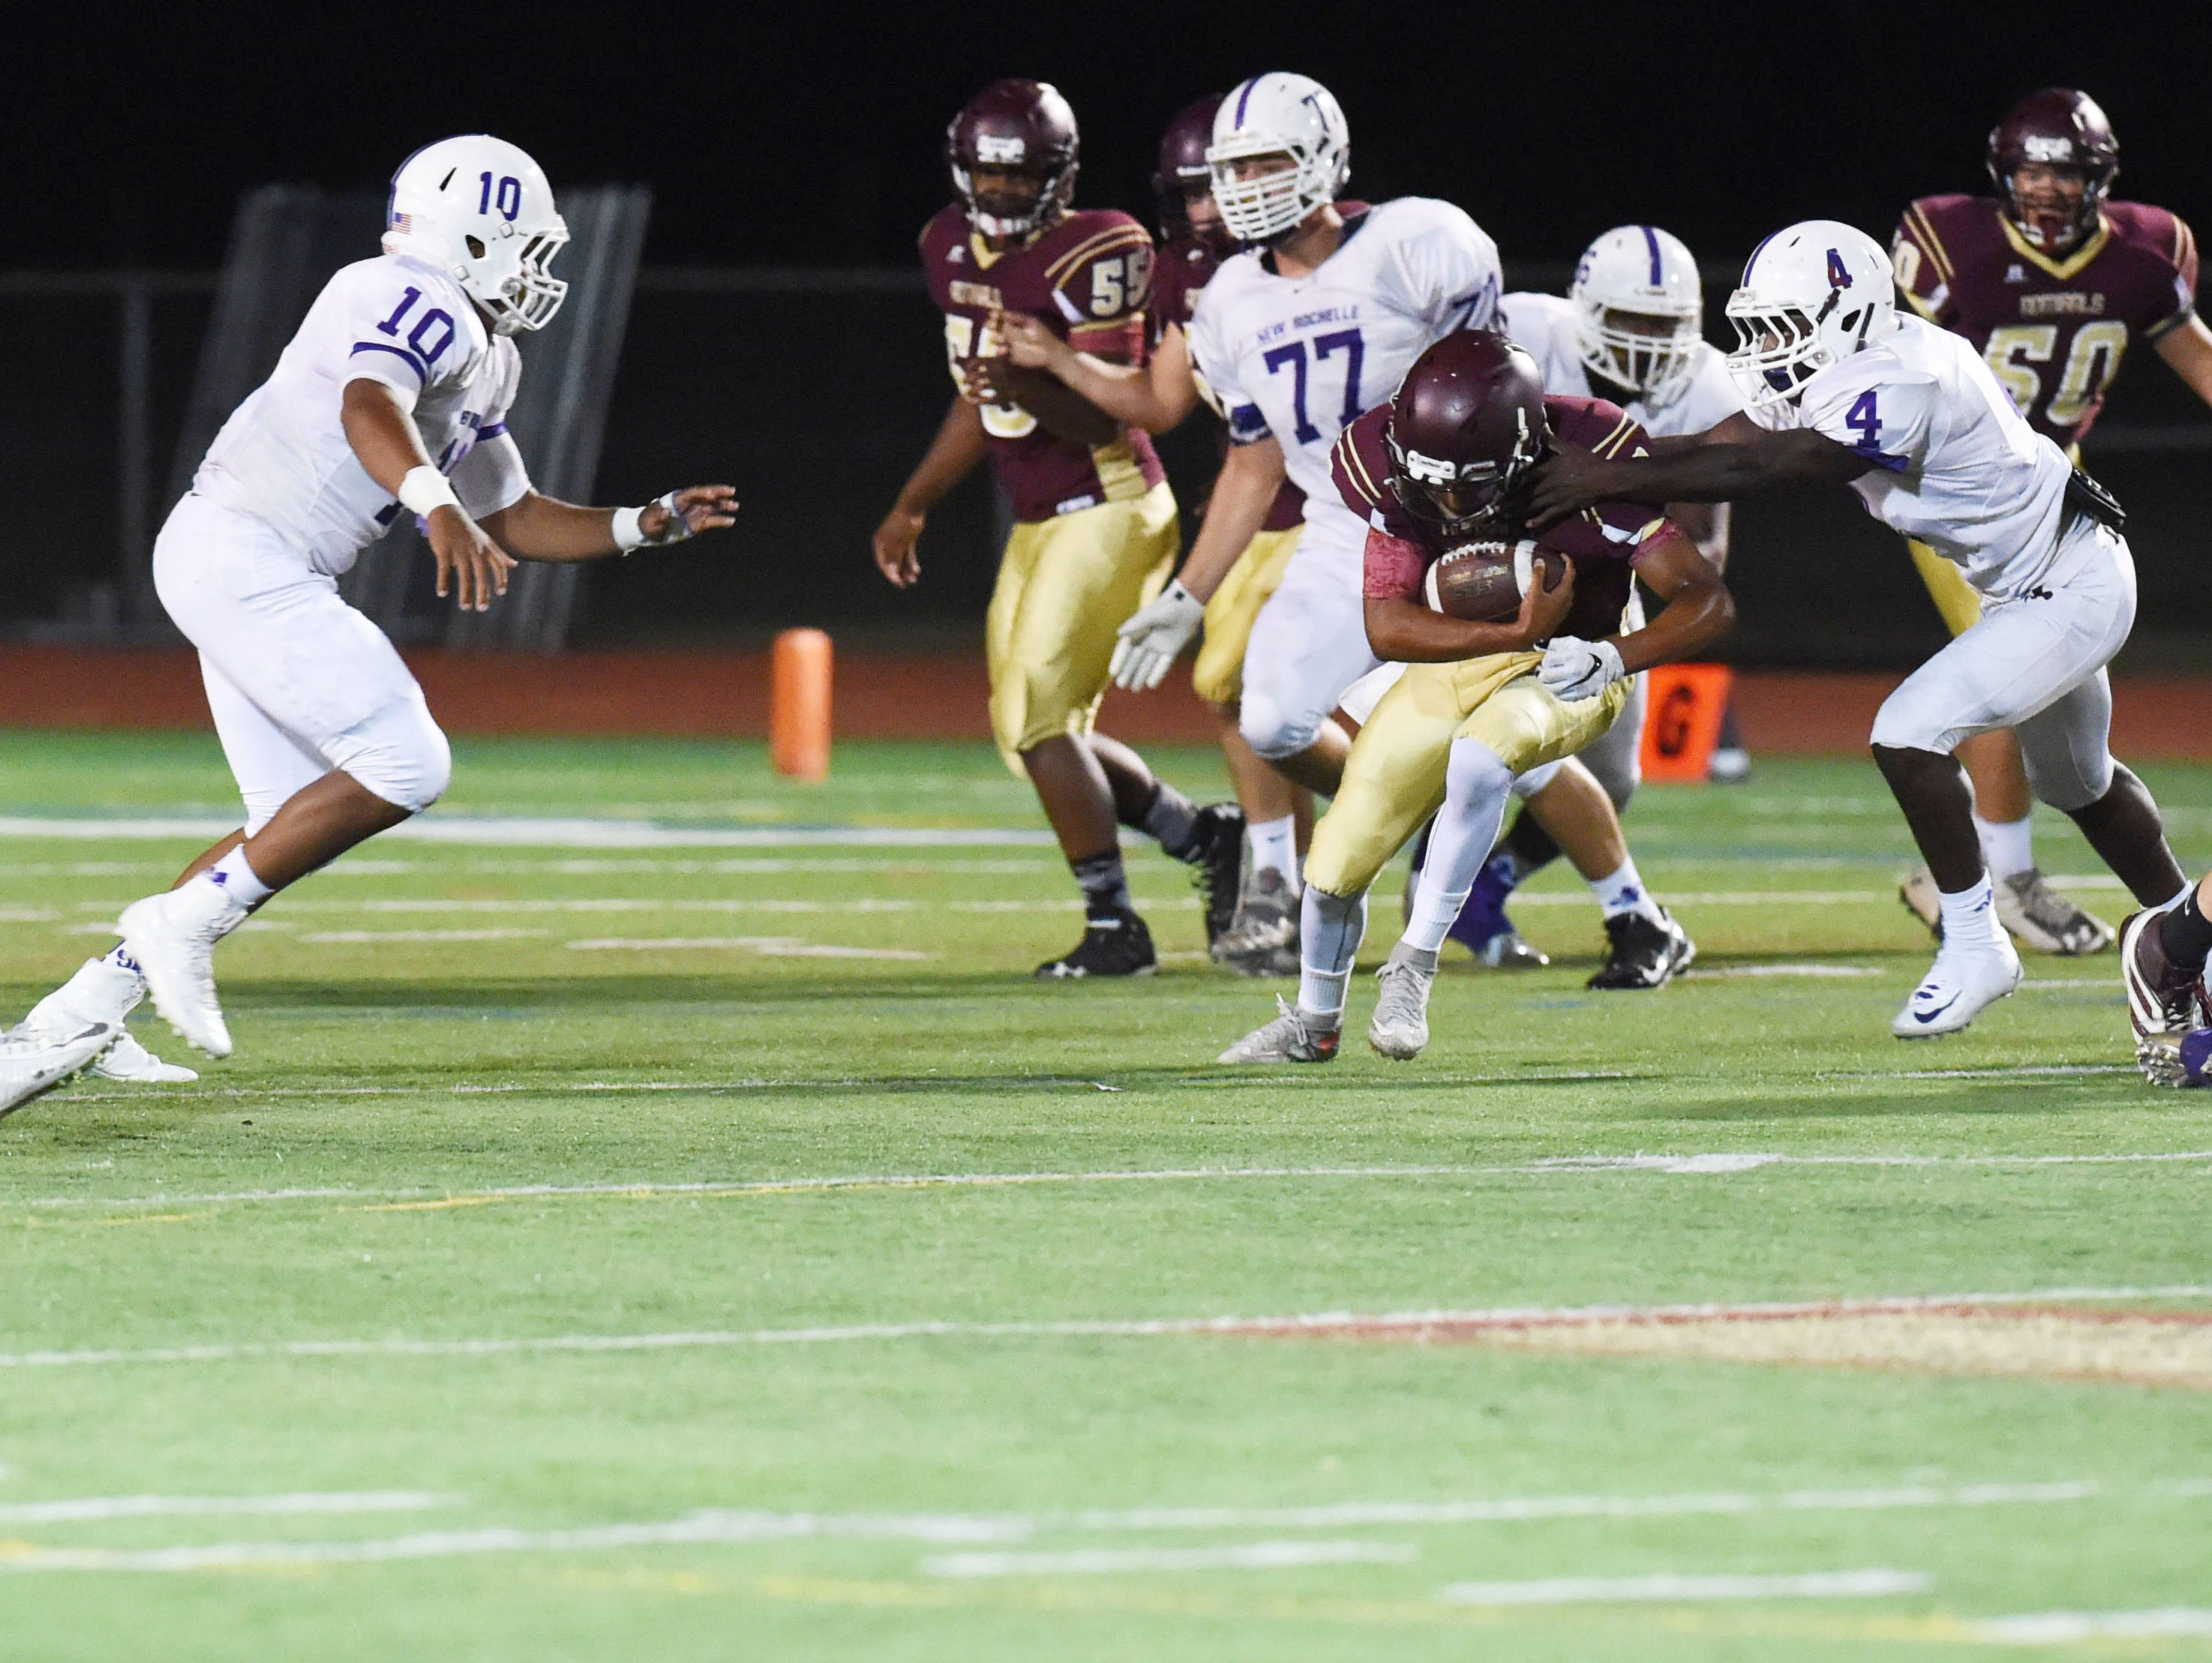 Arlington's Justin Leigh charges through a hole as New Rochelle's Jonathan Saddler, left, and Keelan Thomas, right, defend.